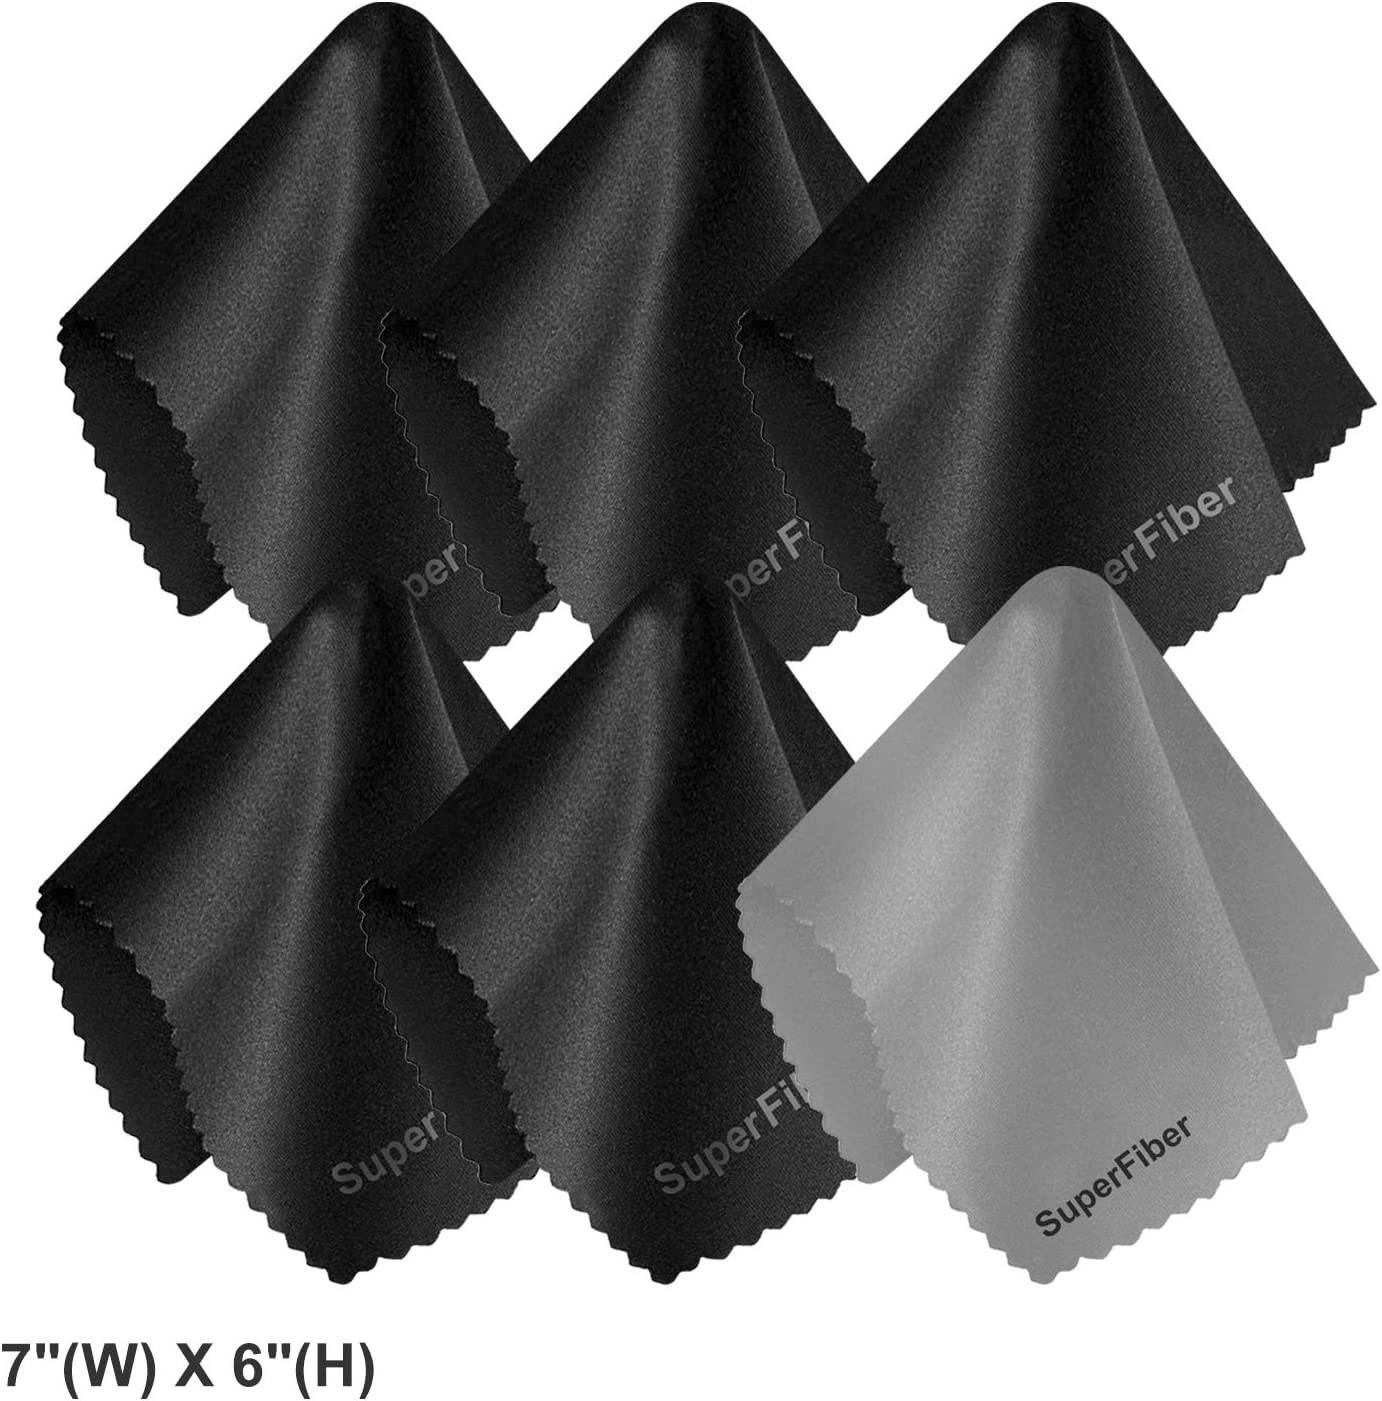 7 Camera Lens LS PHOTOGRAPHY 6 Pack Black and Gray Microfiber Cleaning Cloth Computers LGG824 W H Surfaces Wipes Cleaner Lint Free Cloth for Eyeglasses X 6 LCD Screens Cell Phones